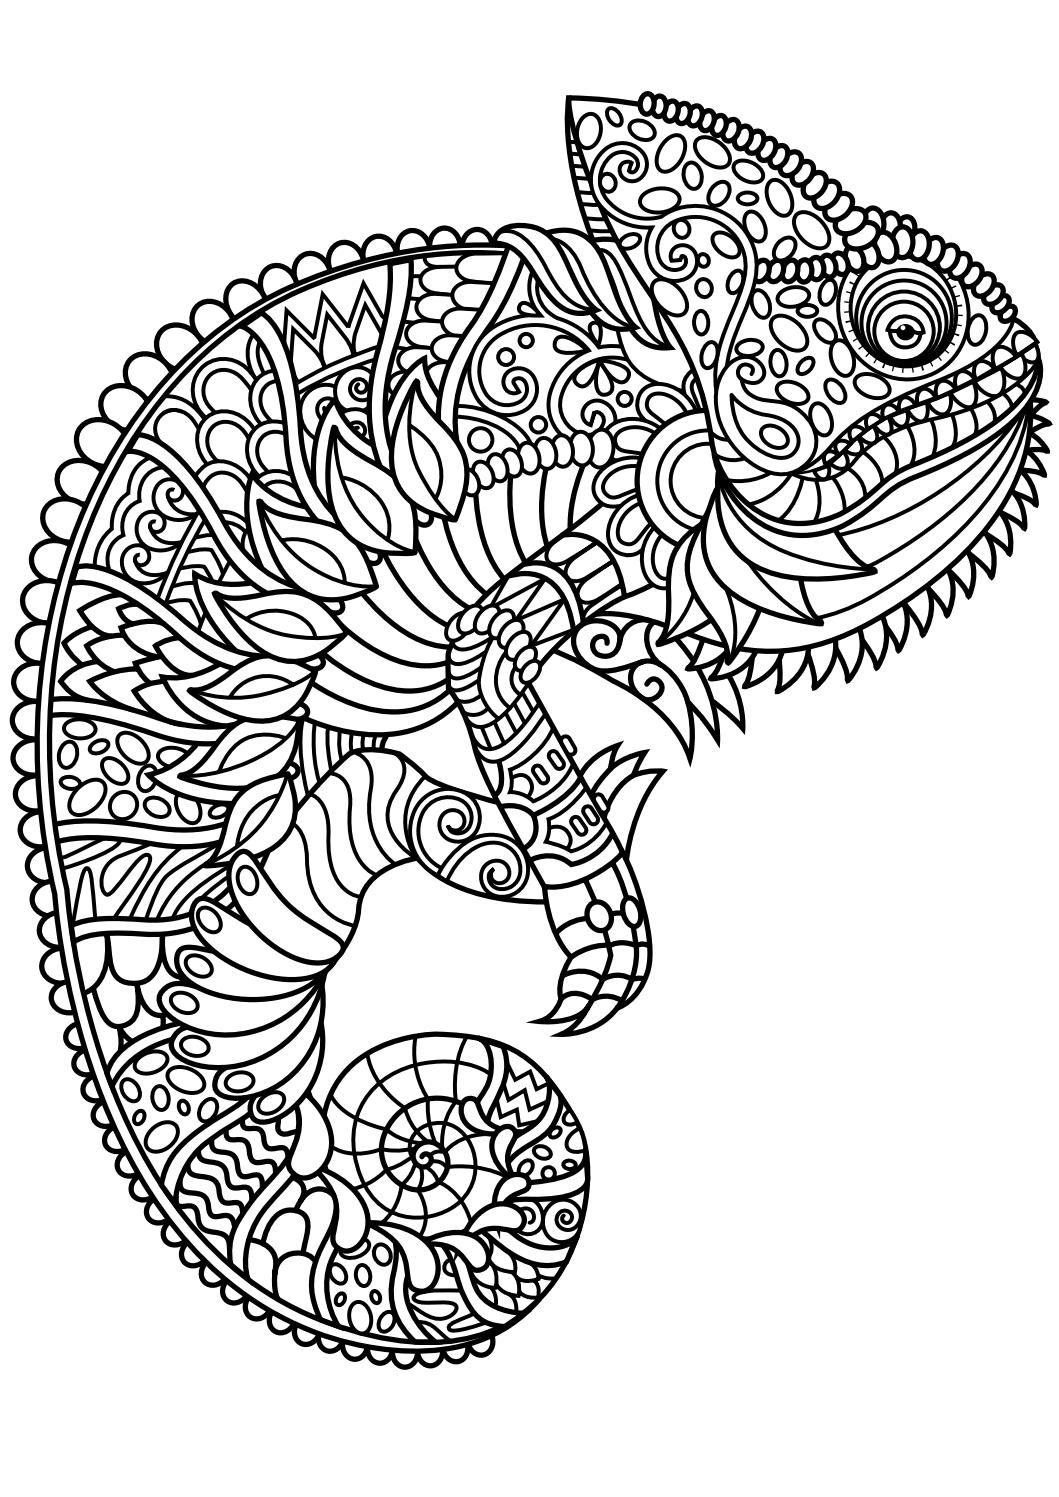 Animal coloring pages pdf Free adult coloring pages